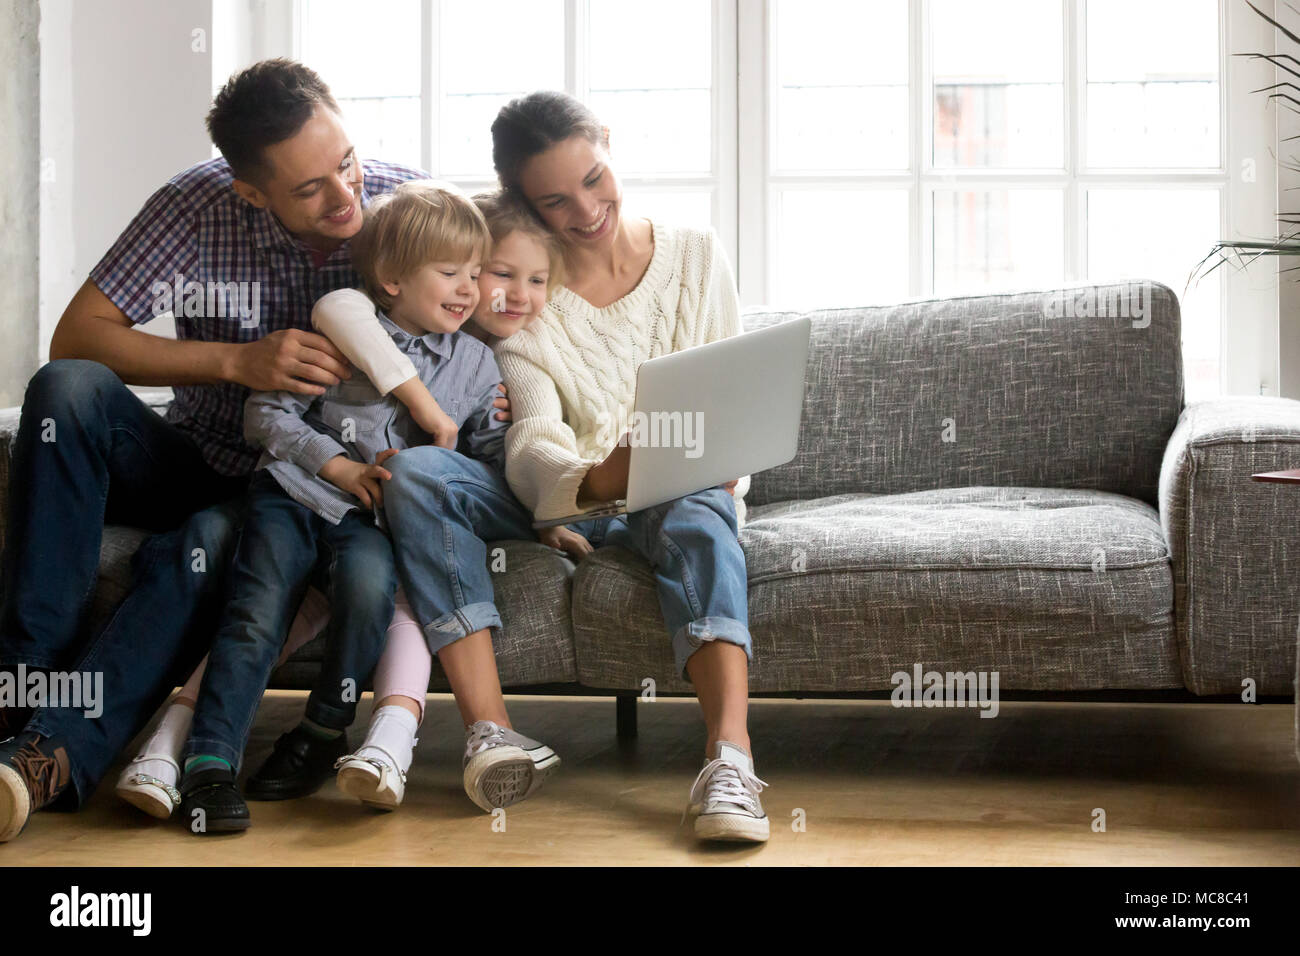 Happy family with little kids enjoying using application on laptop together, smiling parents spending time with children son and daughter having fun w - Stock Image